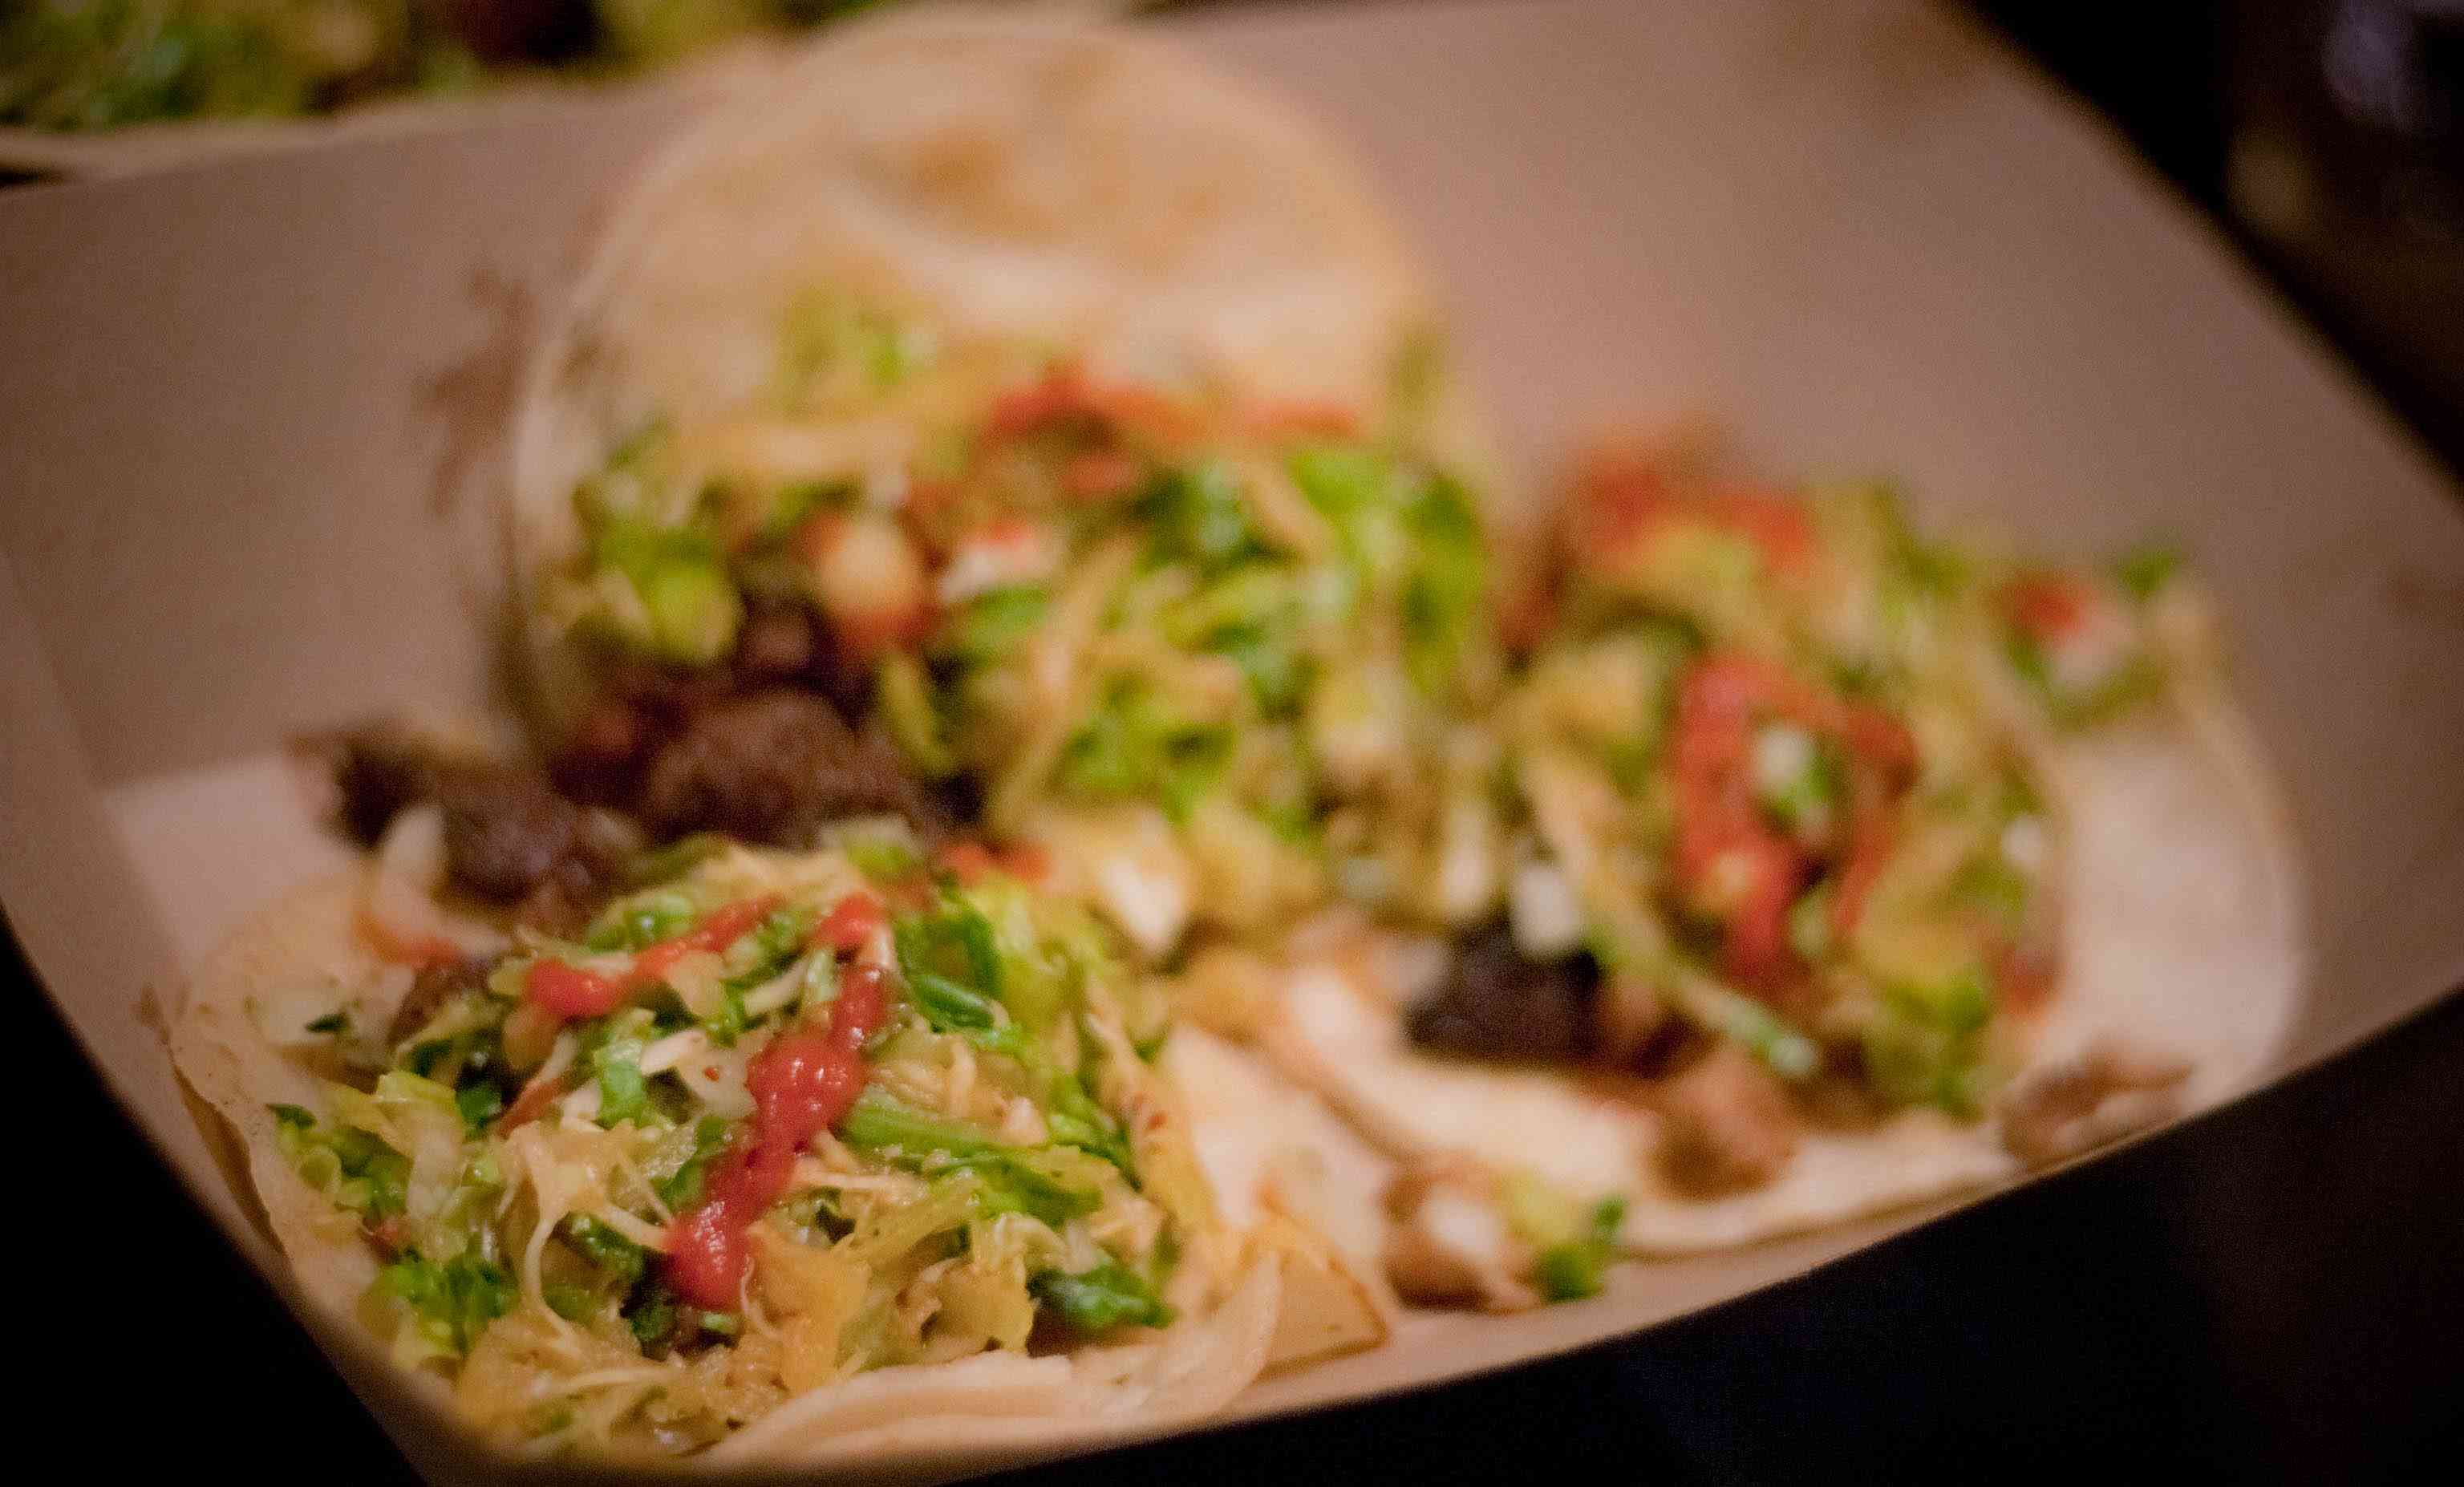 Three out of focus tacos from Kogi BBQ in a cardboard tray